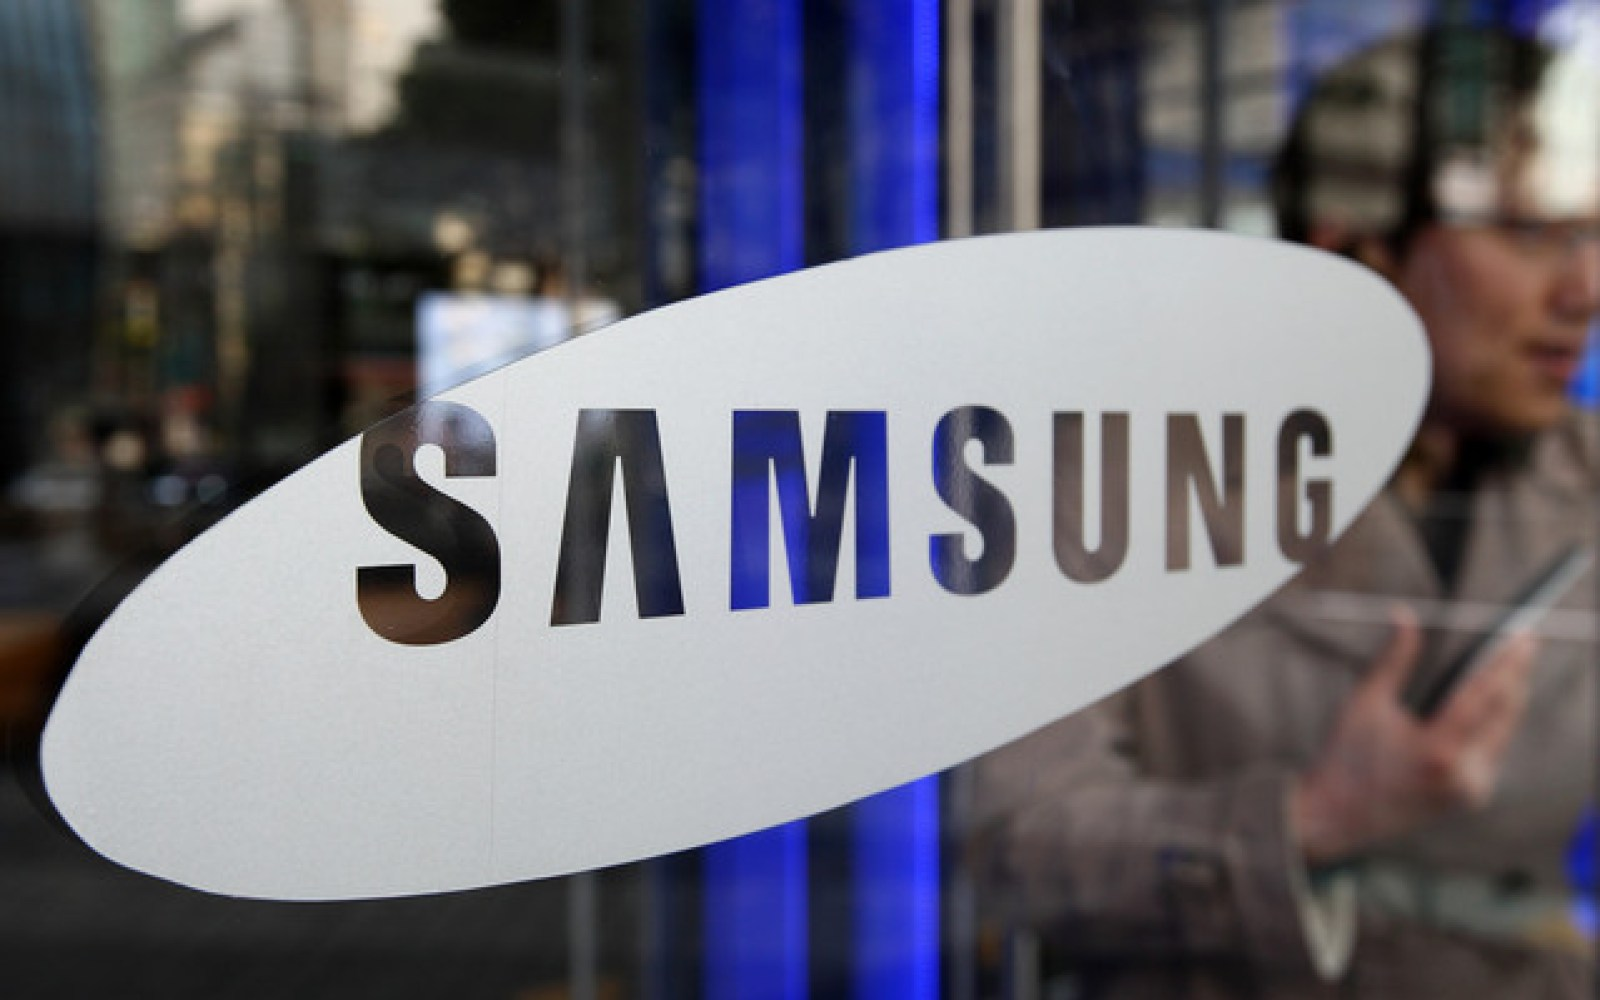 Samsung's new AMOLED tablet will reportedly be called Galaxy Tab S